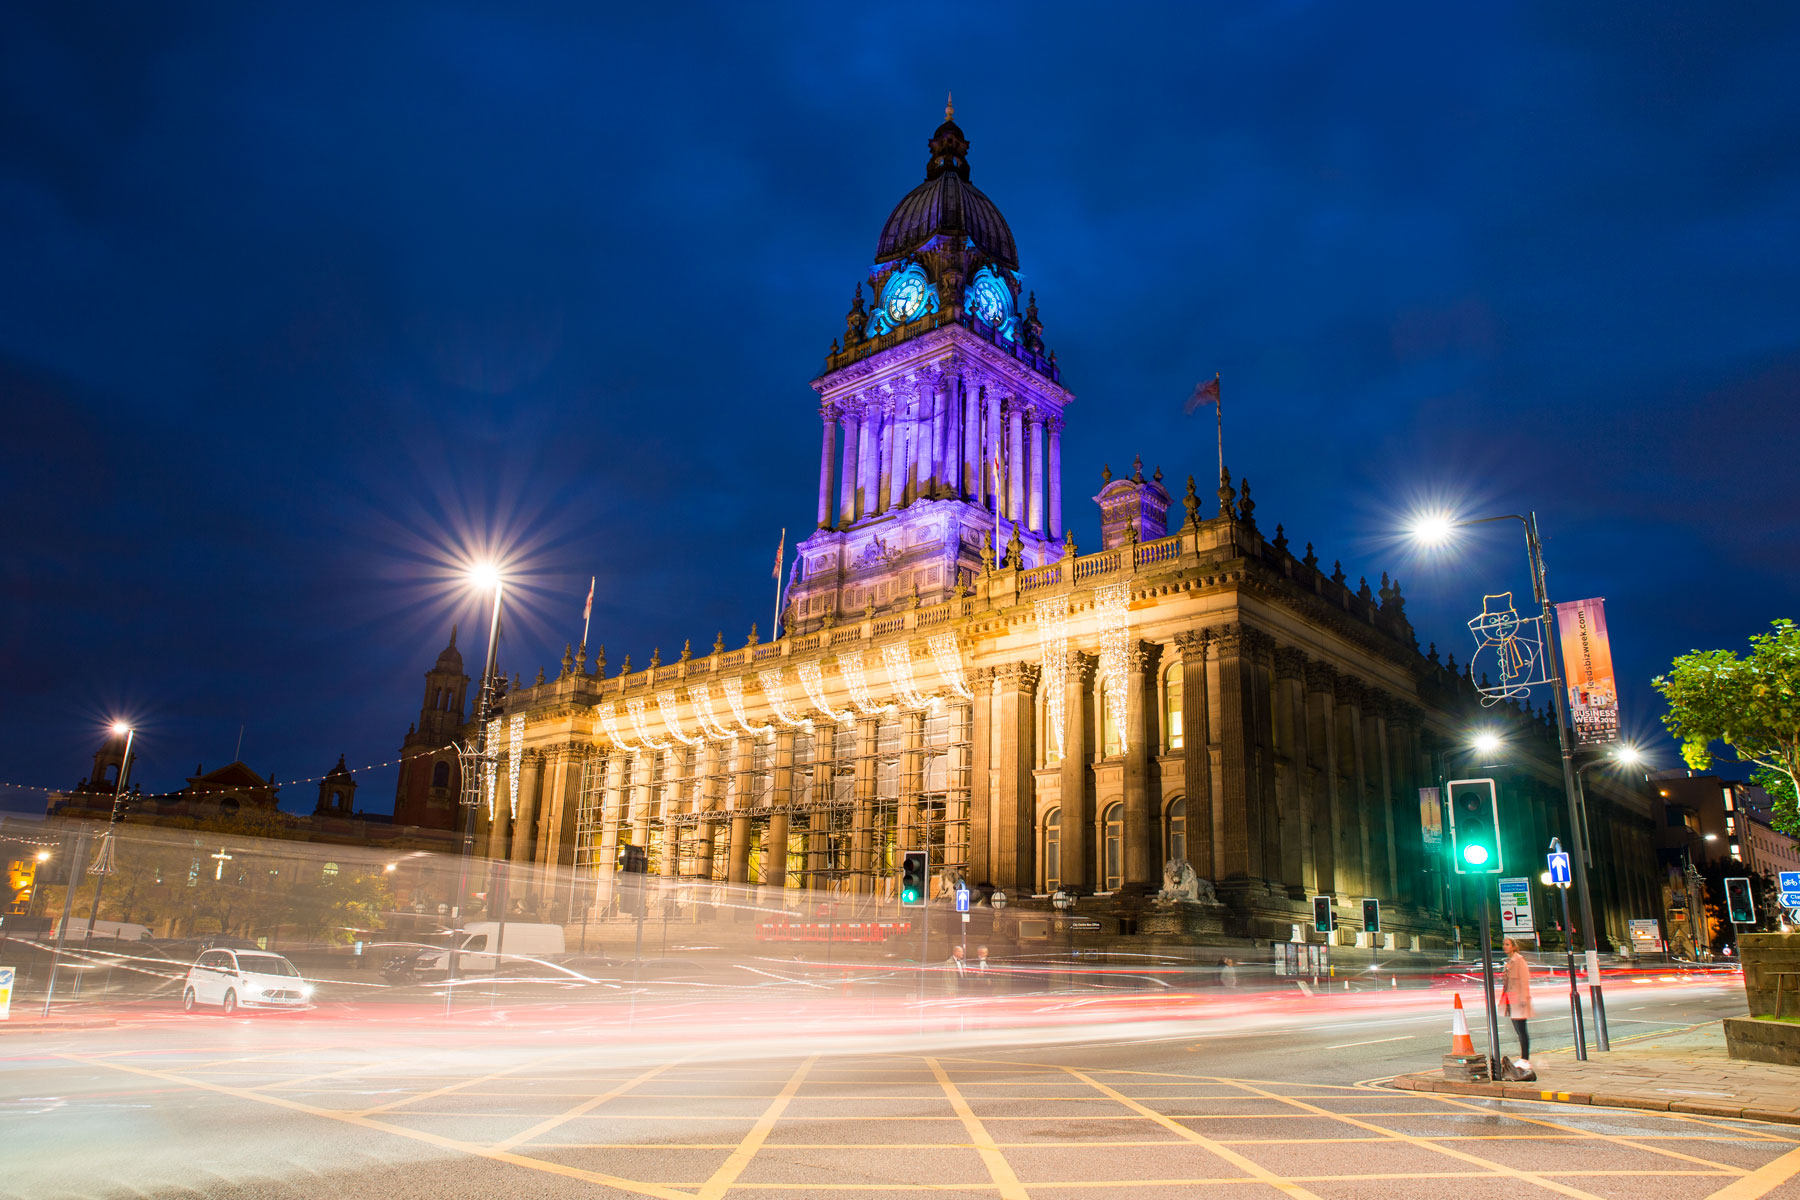 Leeds City Hall at Night